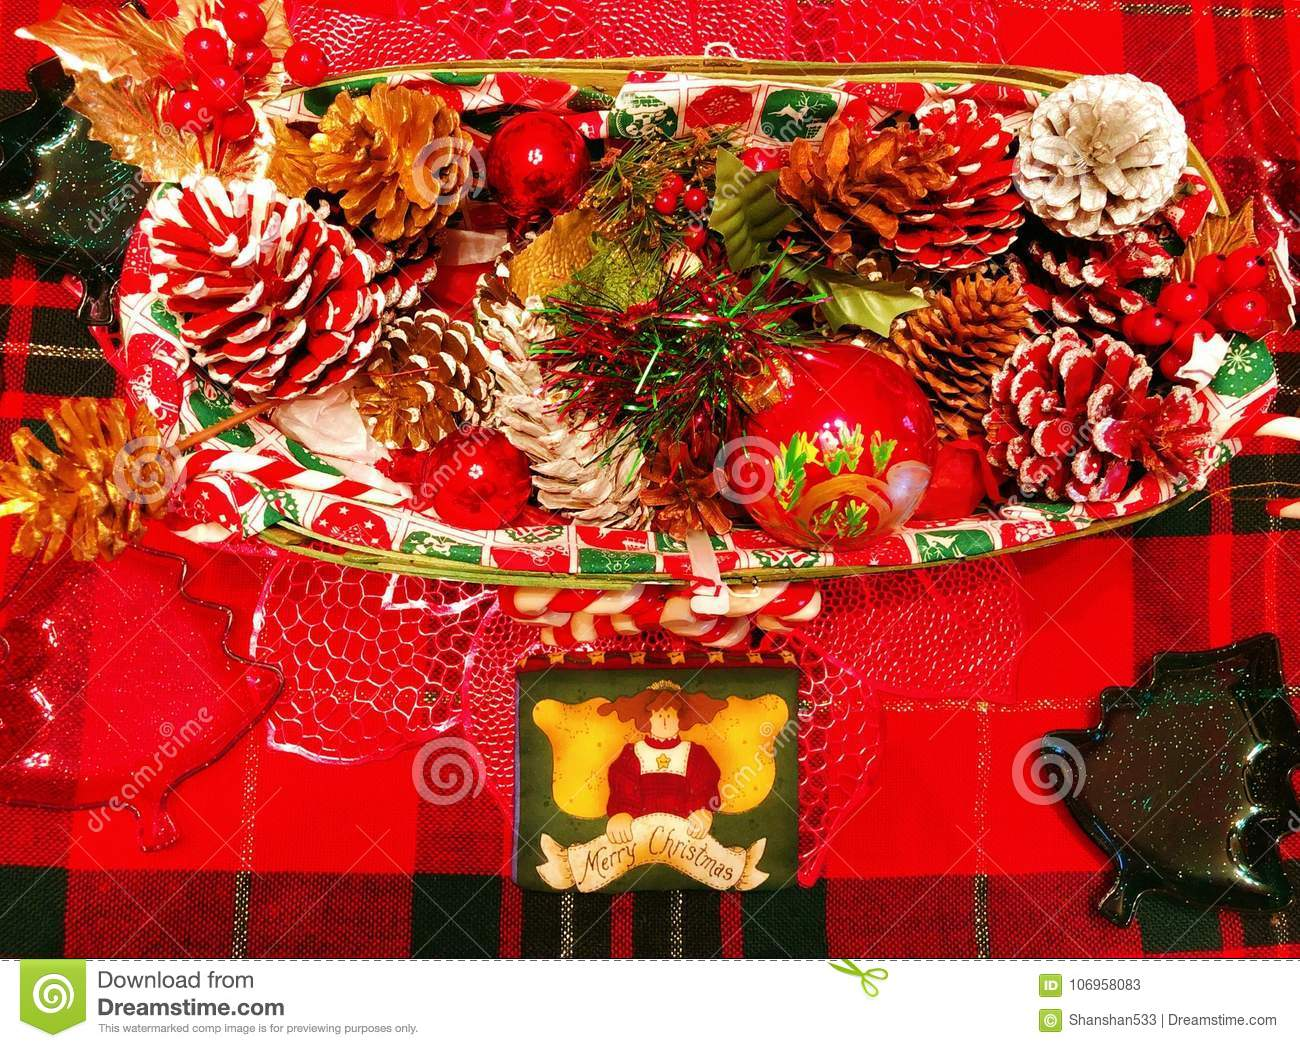 Christmas In Connecticut House.A Table Of Decorations For Christmas Stock Image Image Of